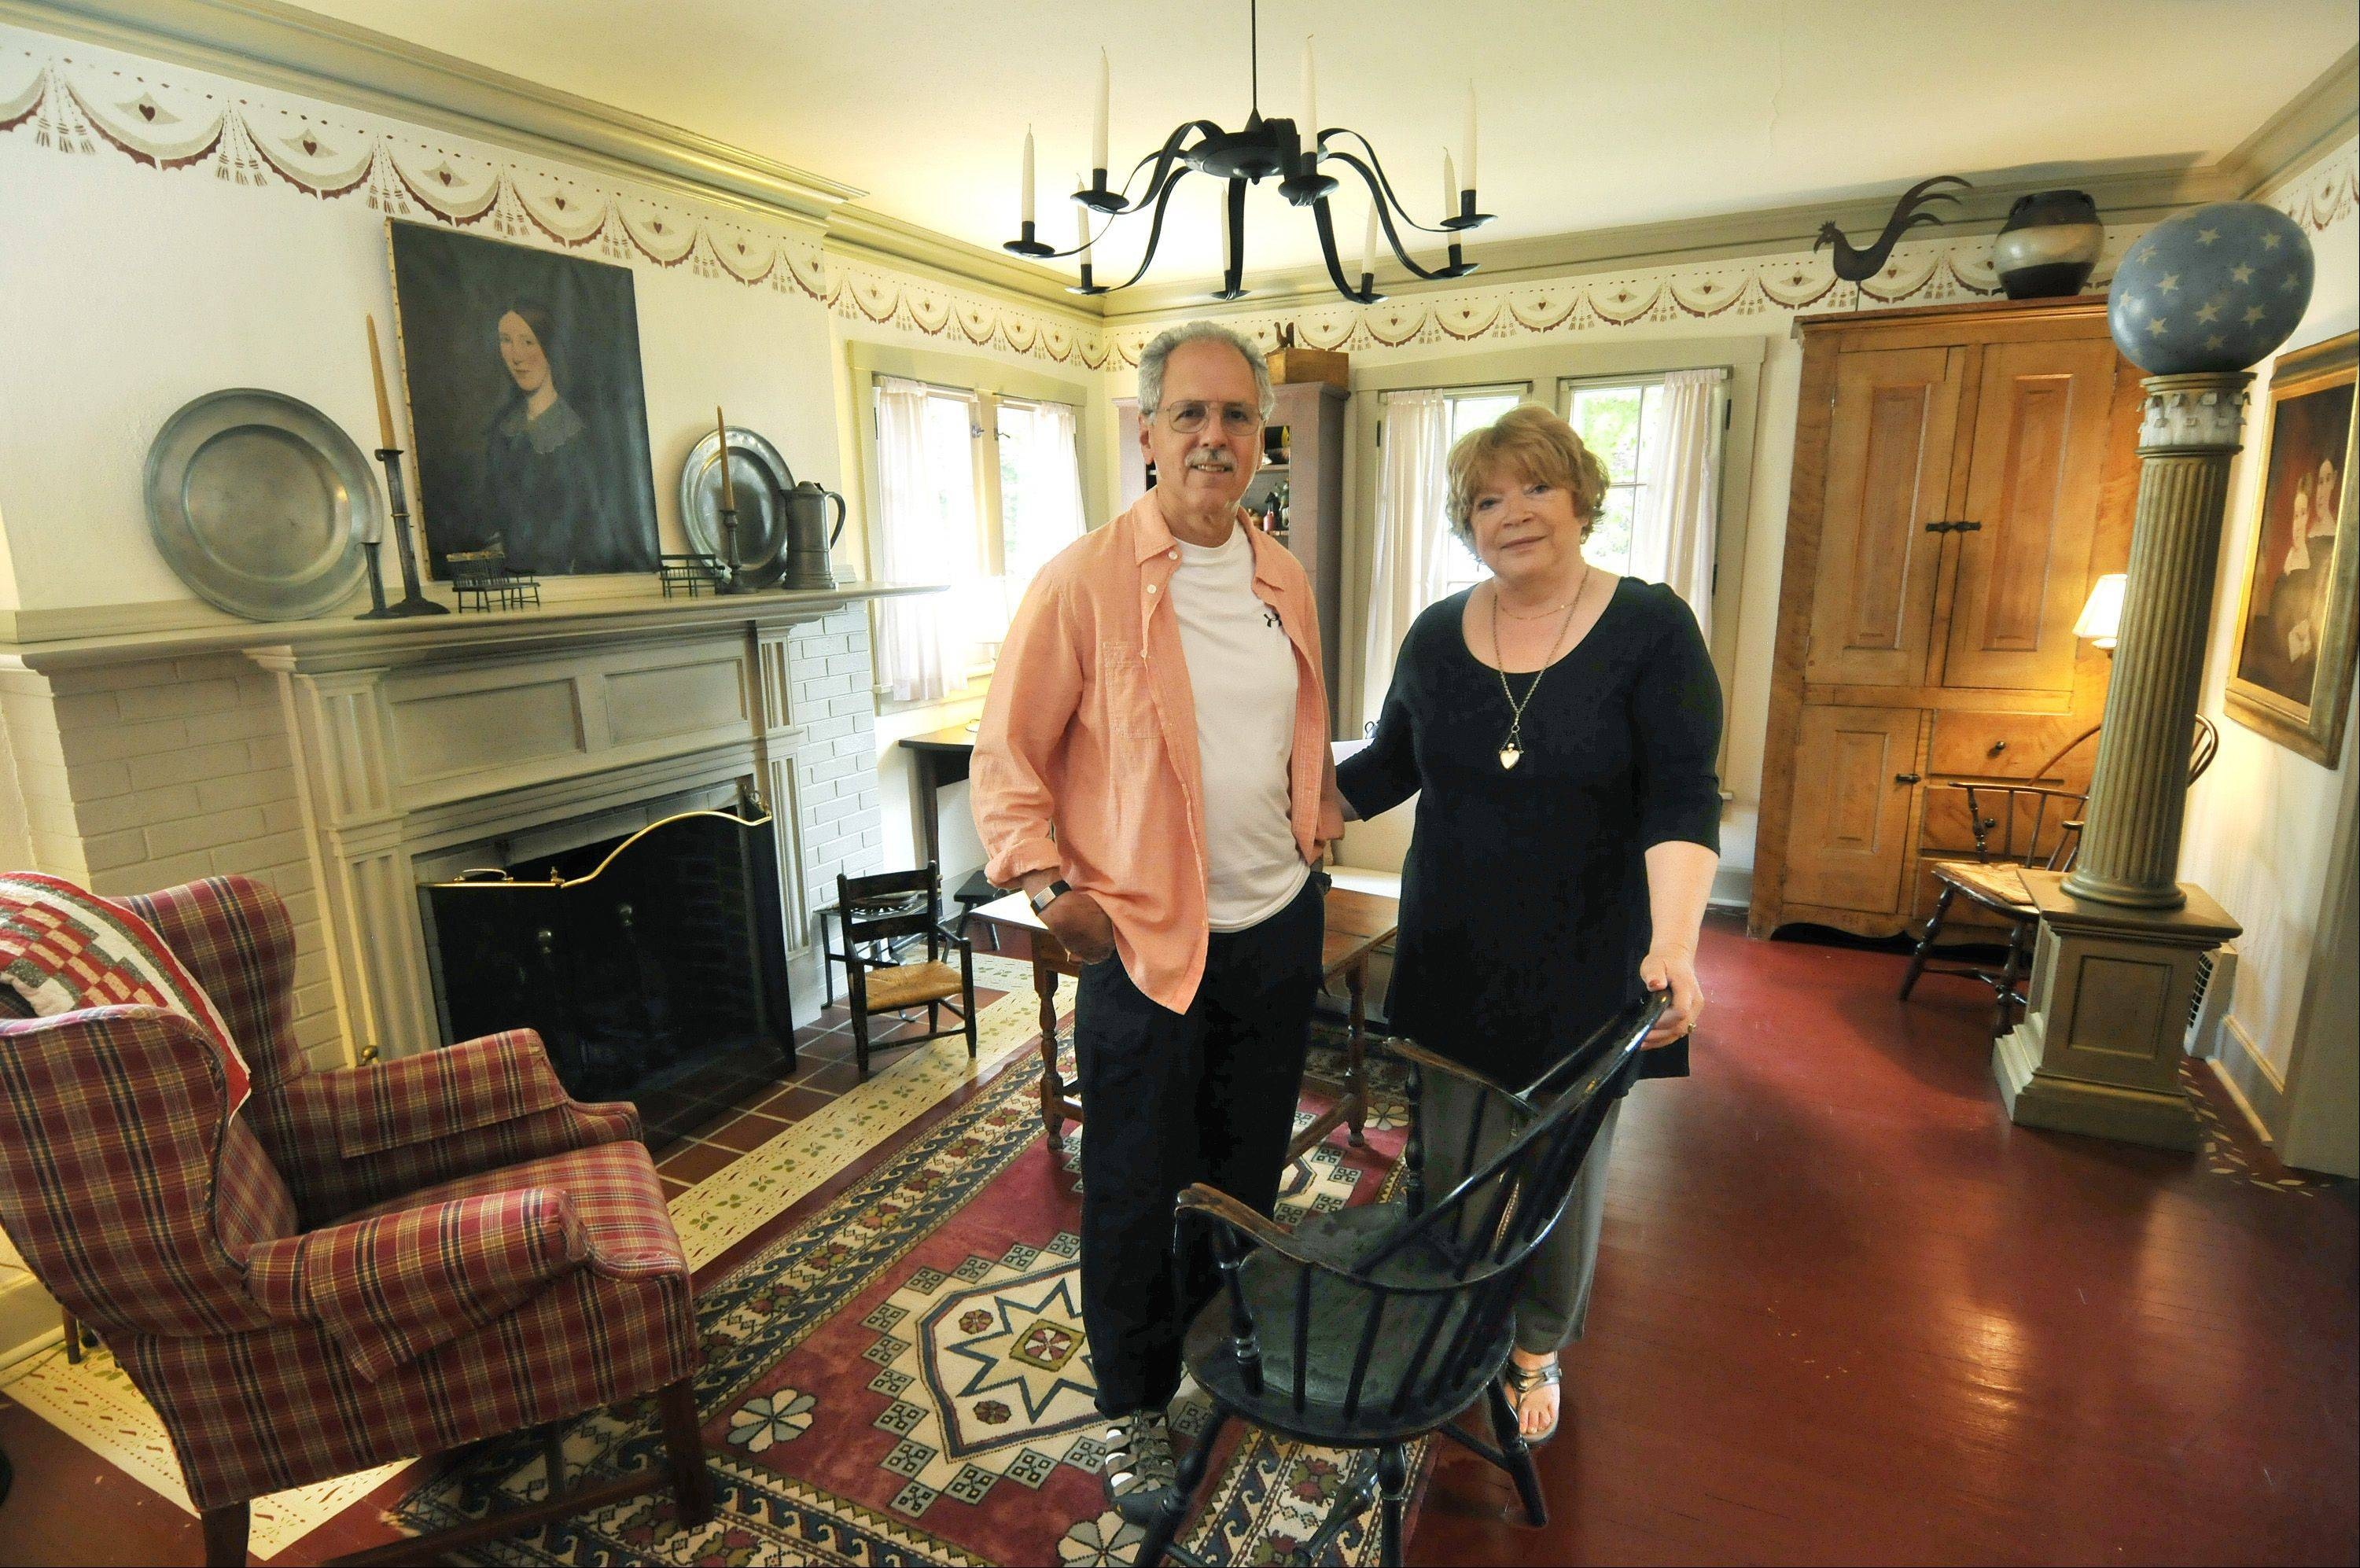 Glen Ellyn residents John and Ginny Larsen are antique dealers who also have a large collection of several thousand antiques in their home.